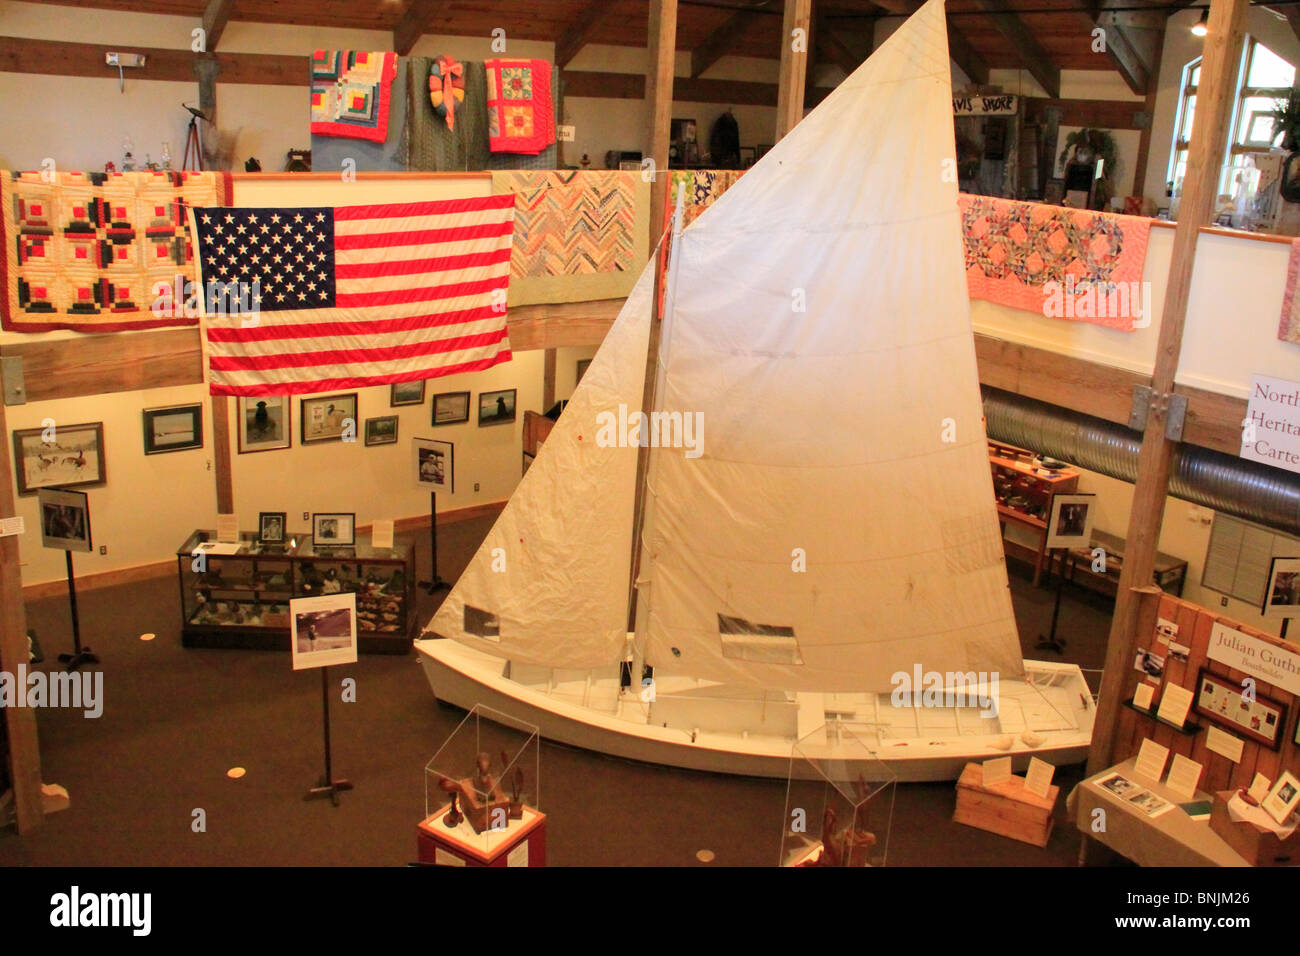 Galley Exhibit at Core Sound Waterfowl Museum, Harkers Island, North Carolina, USA - Stock Image